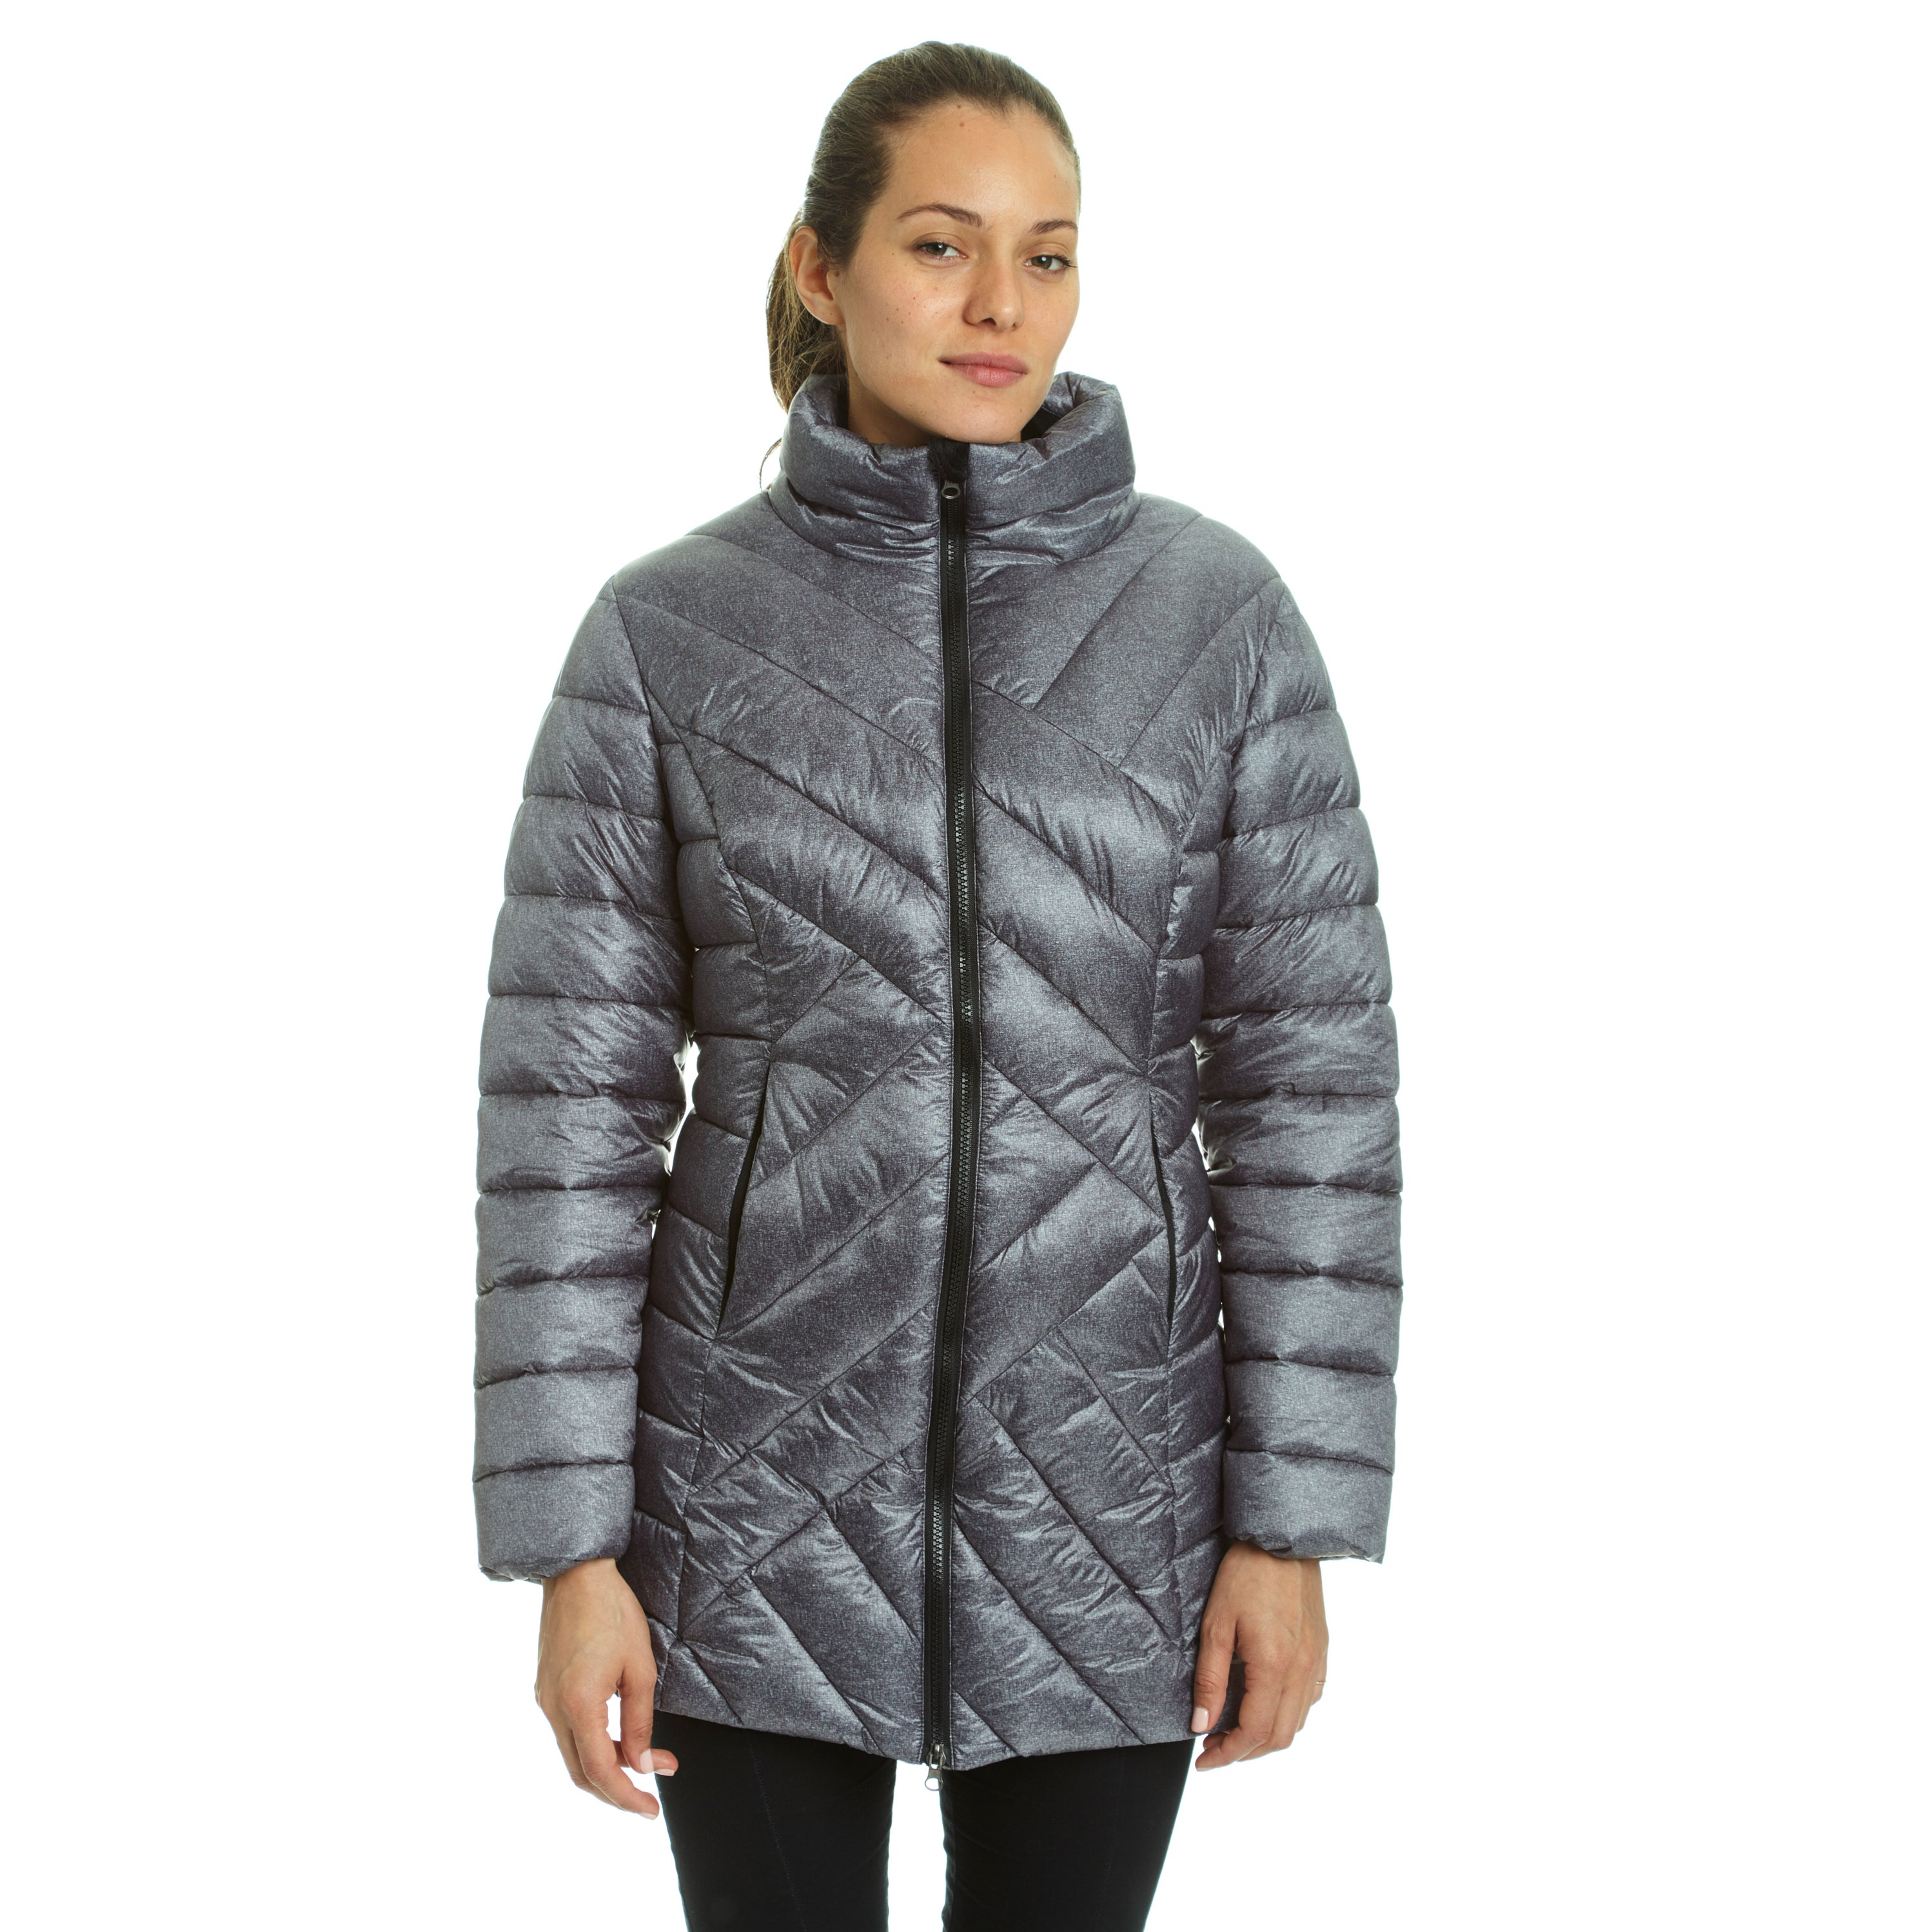 asp coat sell discounted quilt s quilted barbour sale women